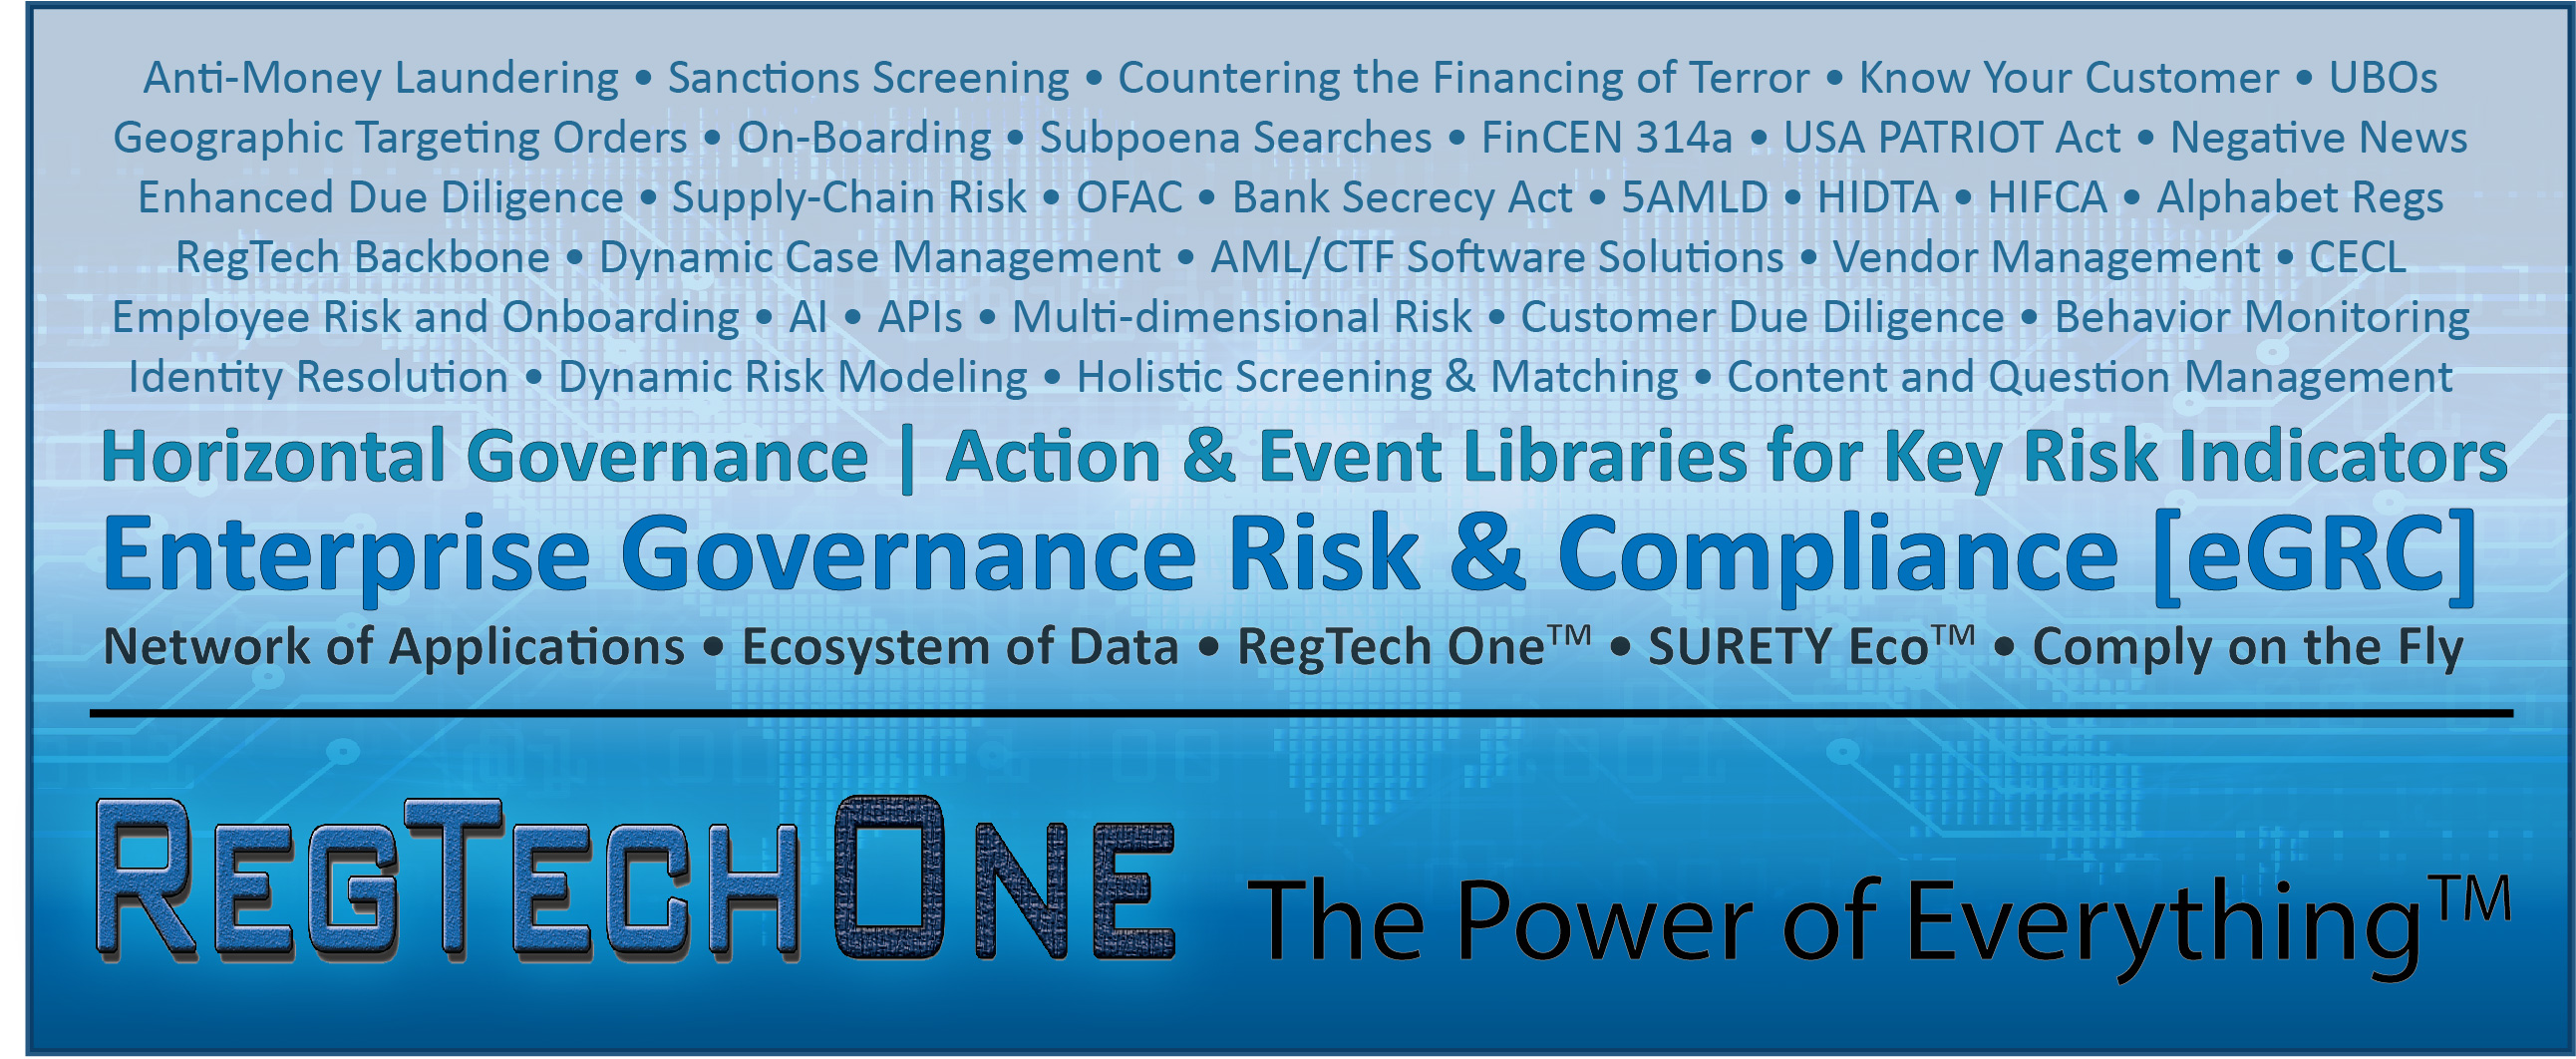 RegTech One art--RegTech platform supports horizontal governance in GRC